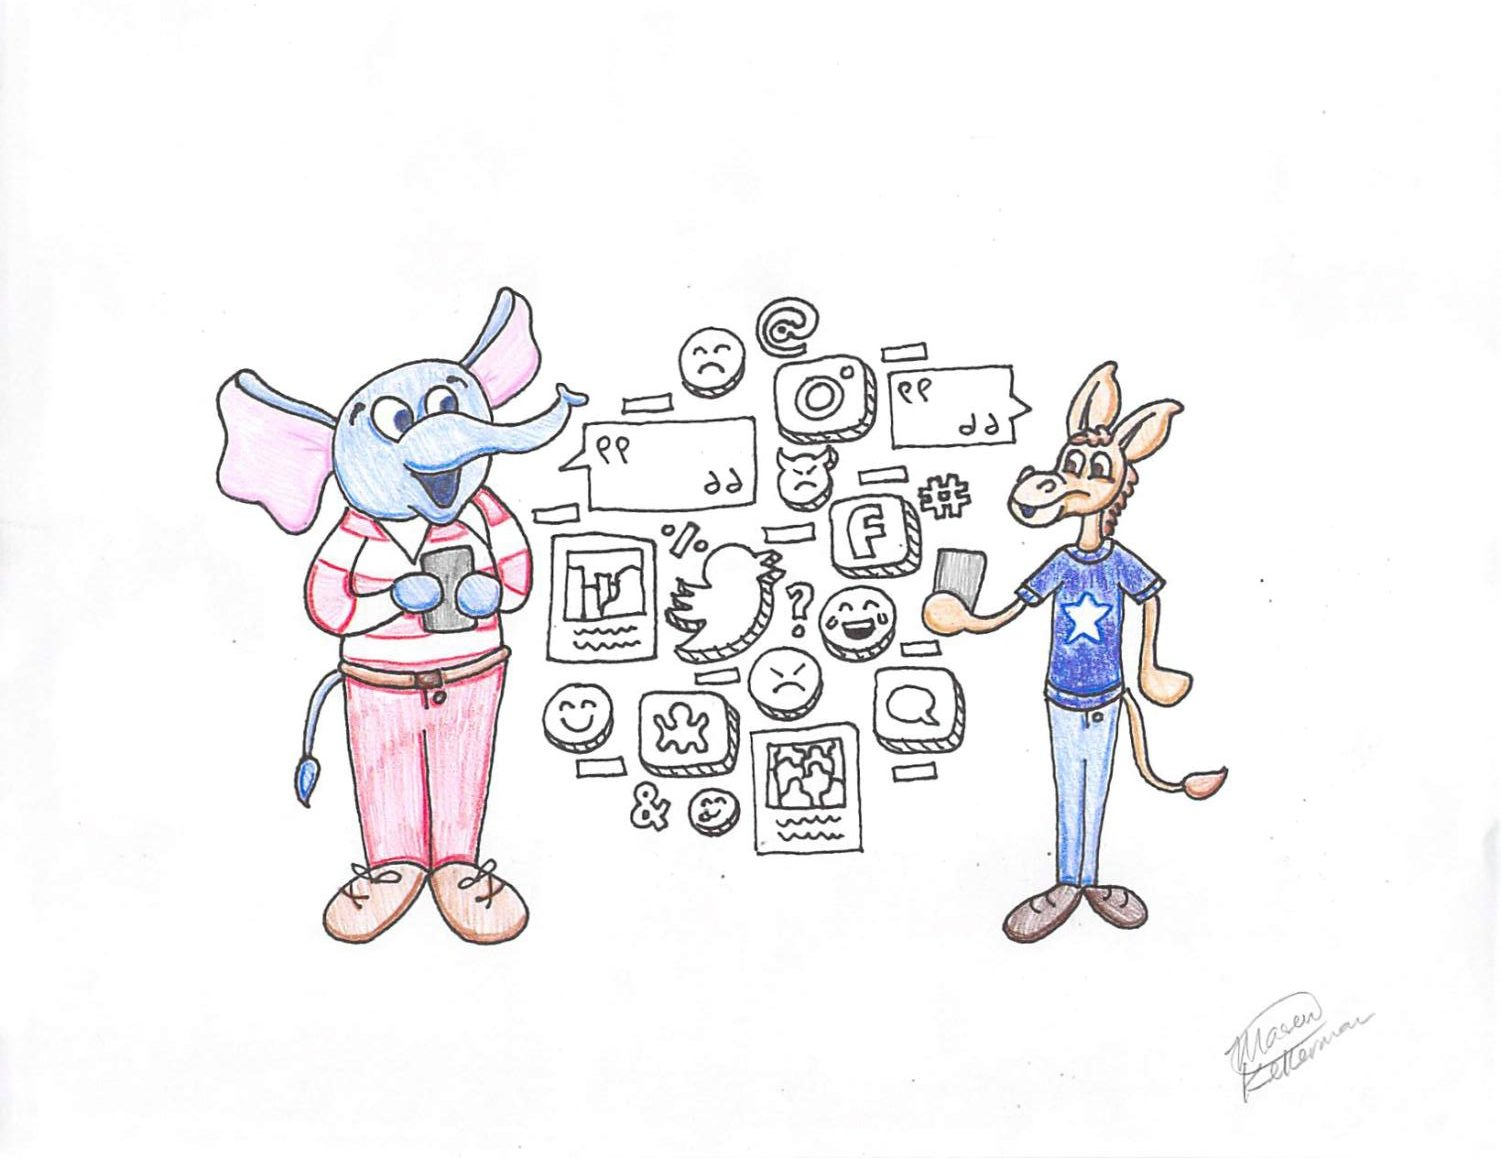 A republican elephant and a democratic donkey on smartphones.